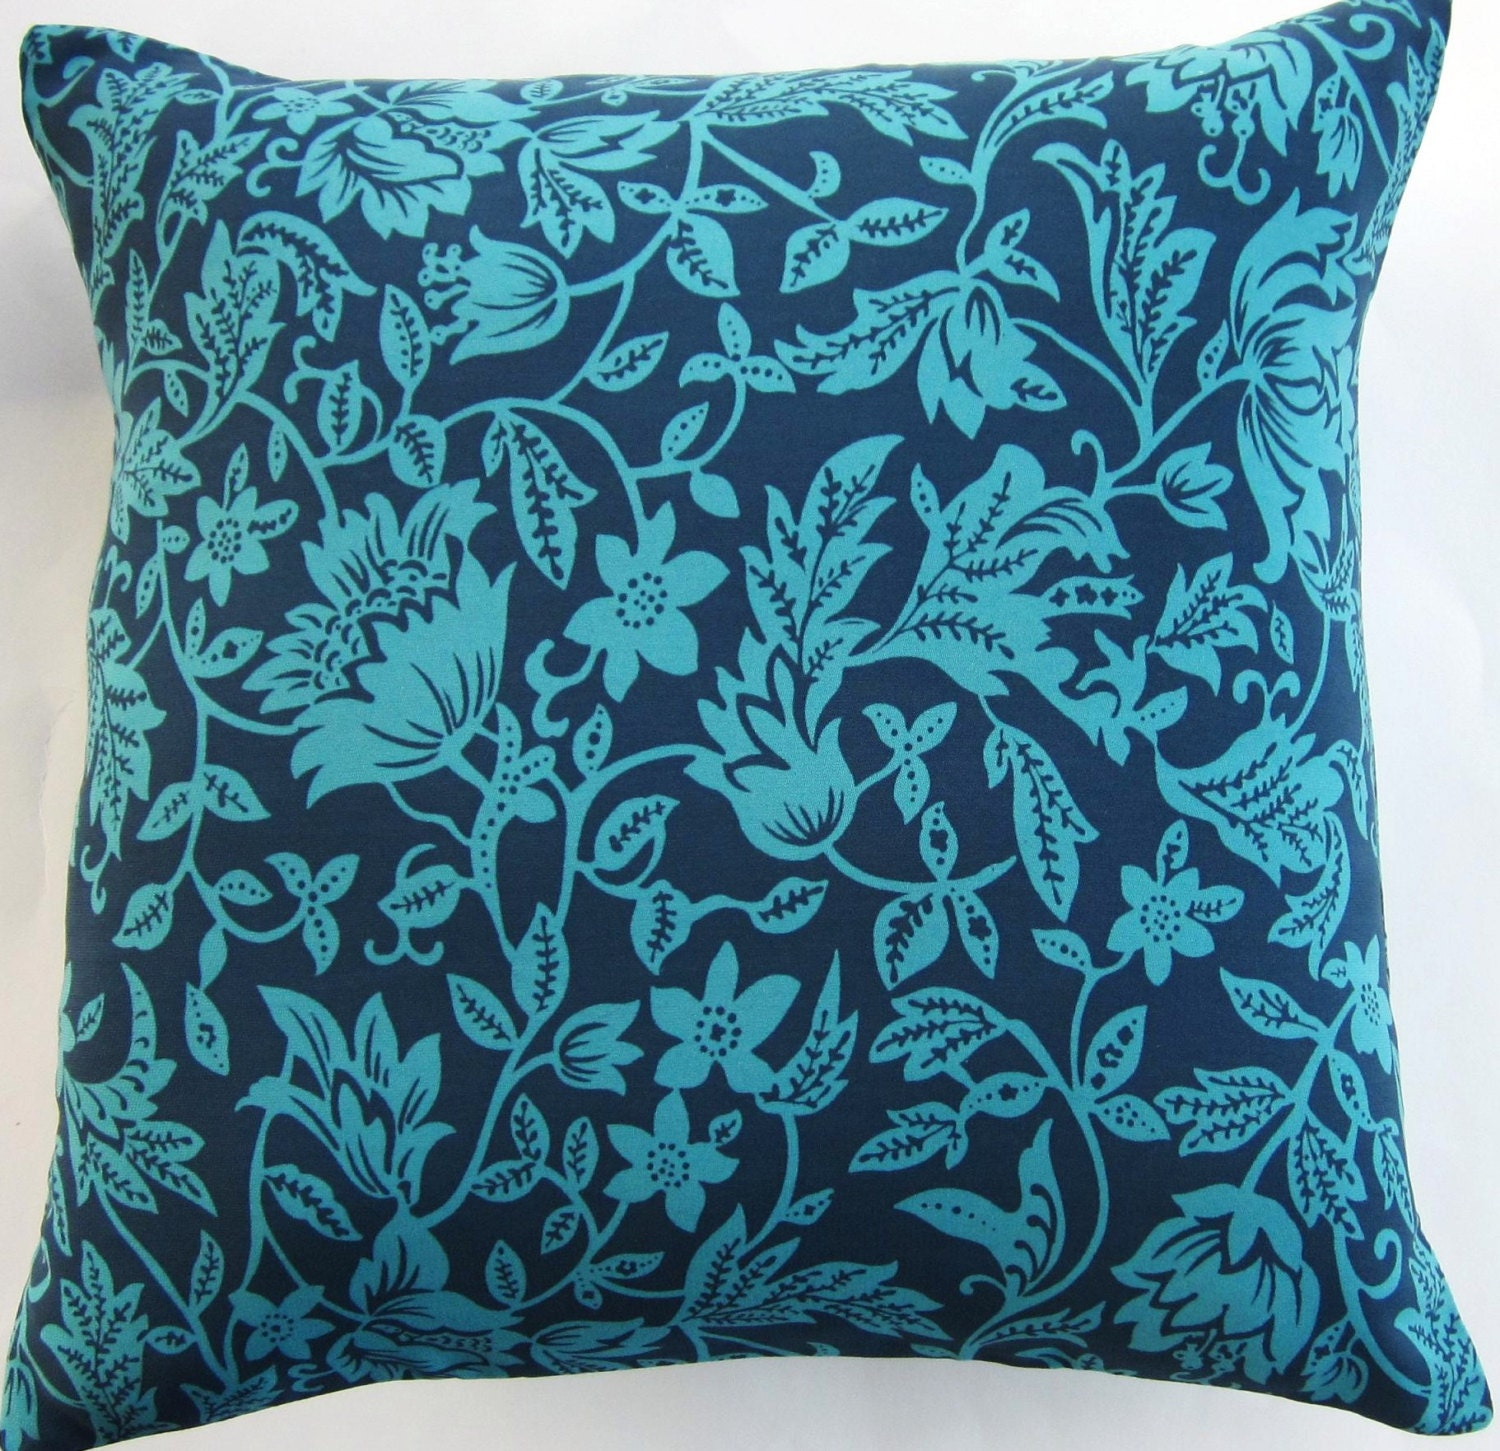 Teal Blue Throw Pillow Covers : Blue and Teal Throw Pillow Cover Navy Blue and Turquoise